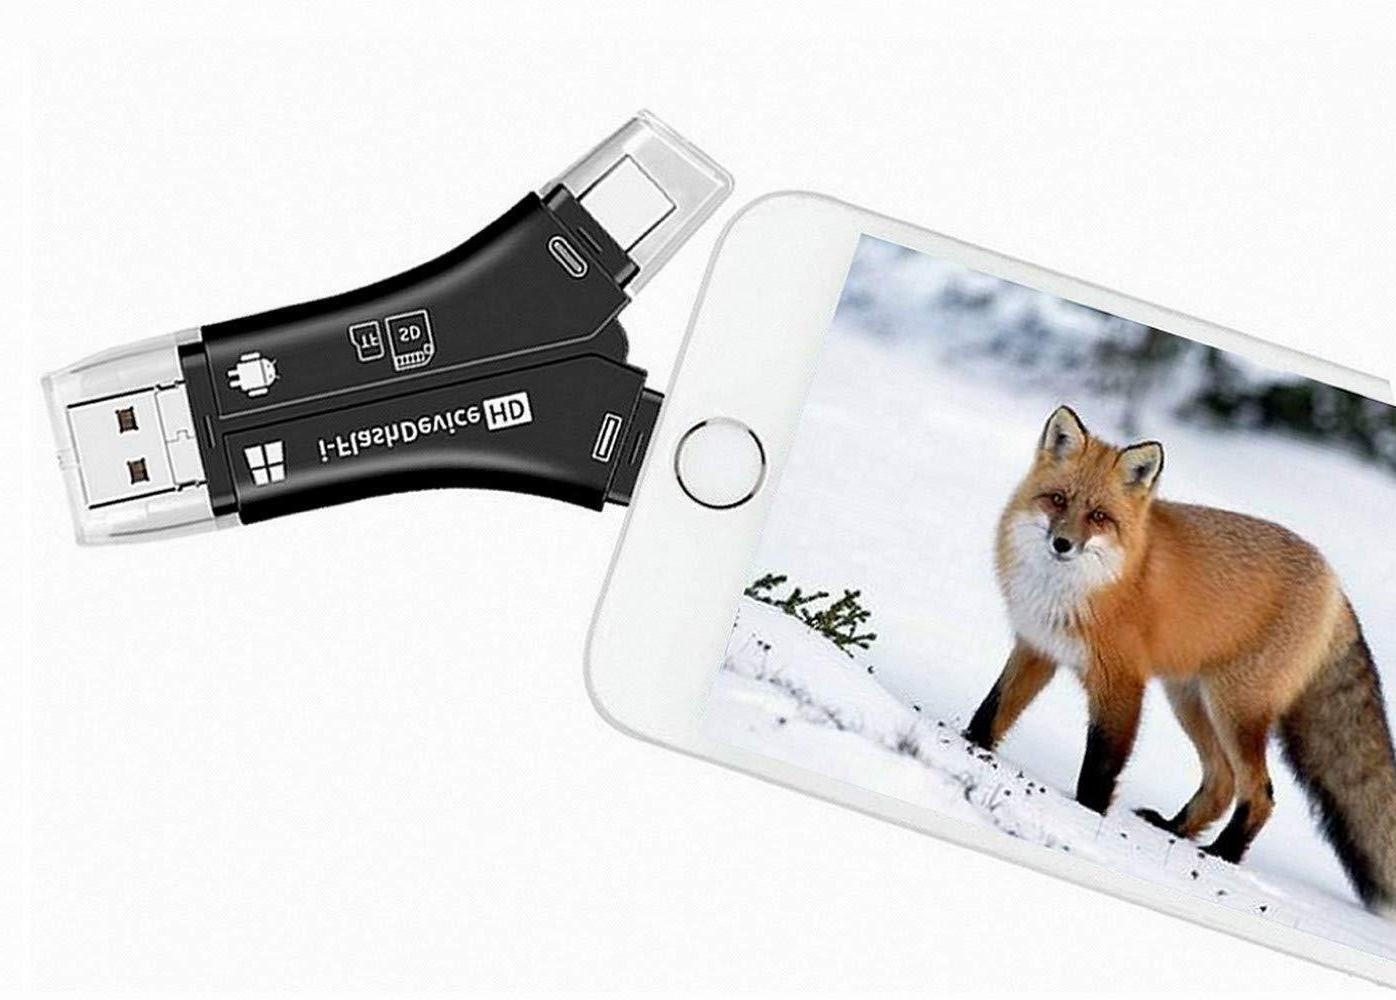 trail camera viewer sd micro sd memory